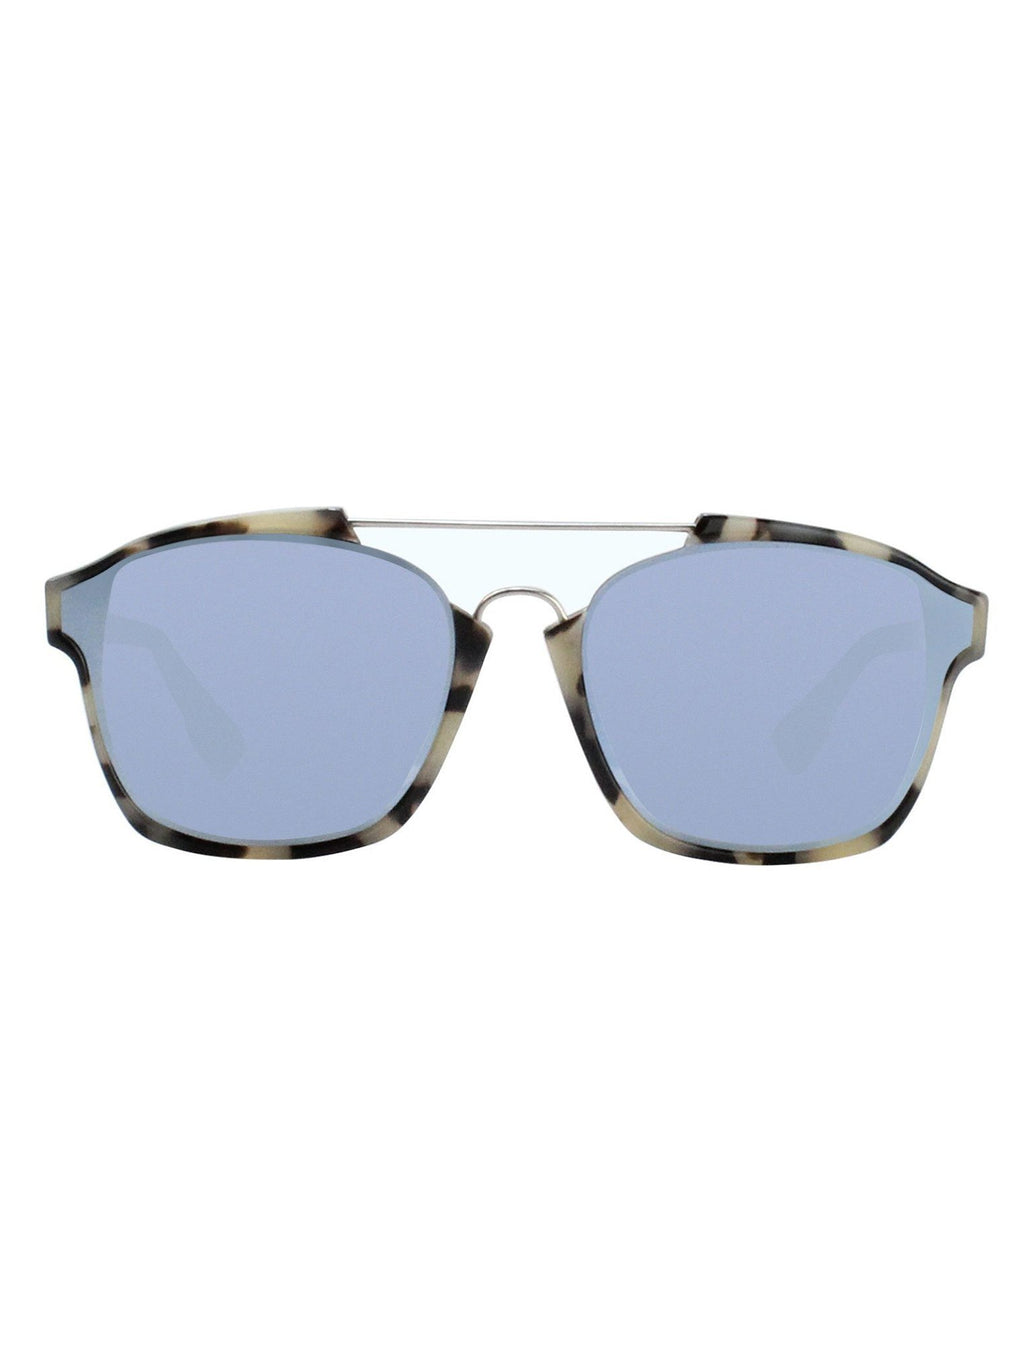 aab27e31a9322 Dior - Abstract Sunglasses - Havana   Light Blue Mirrored - ForwardModa